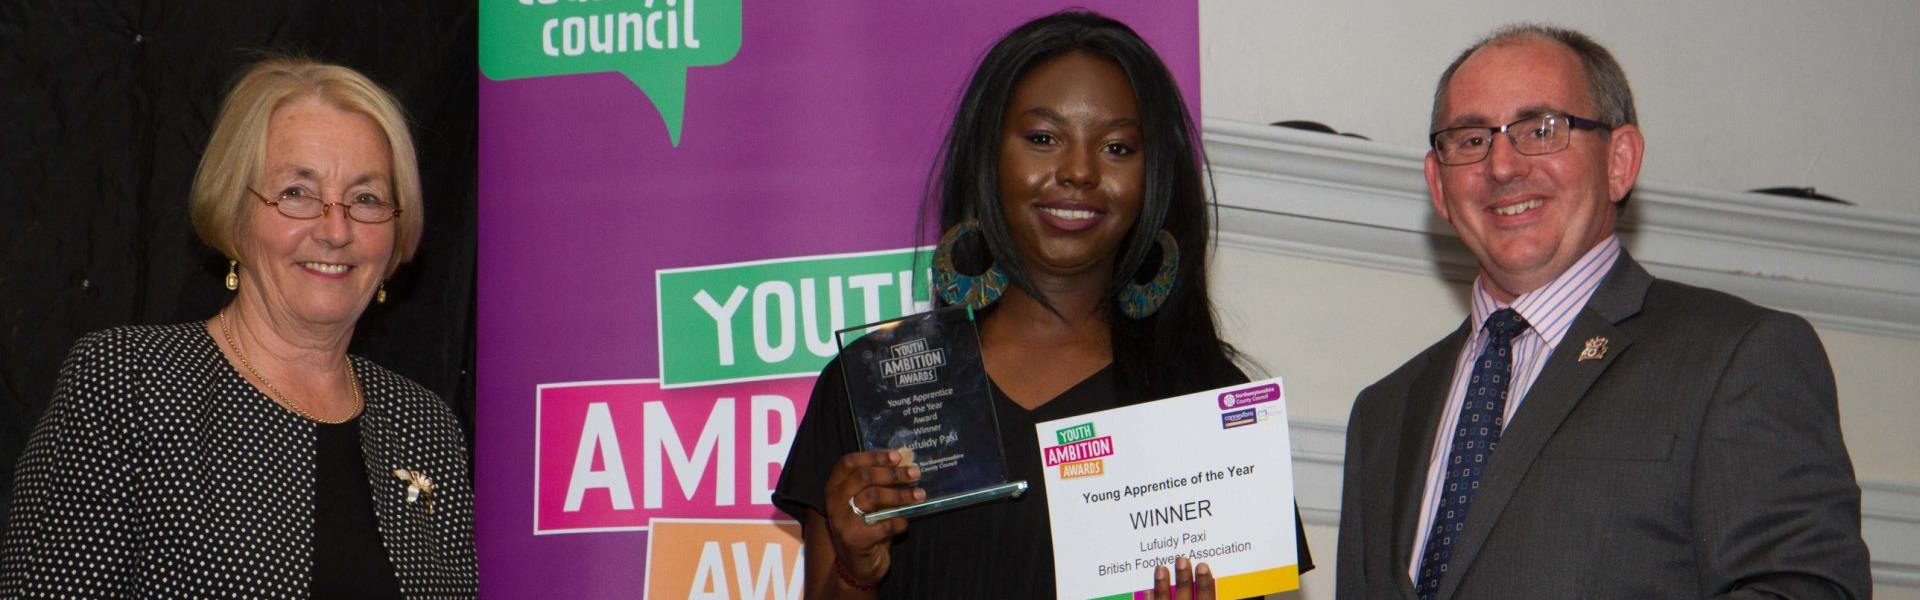 The Youth Ambition Awards are Back! True141